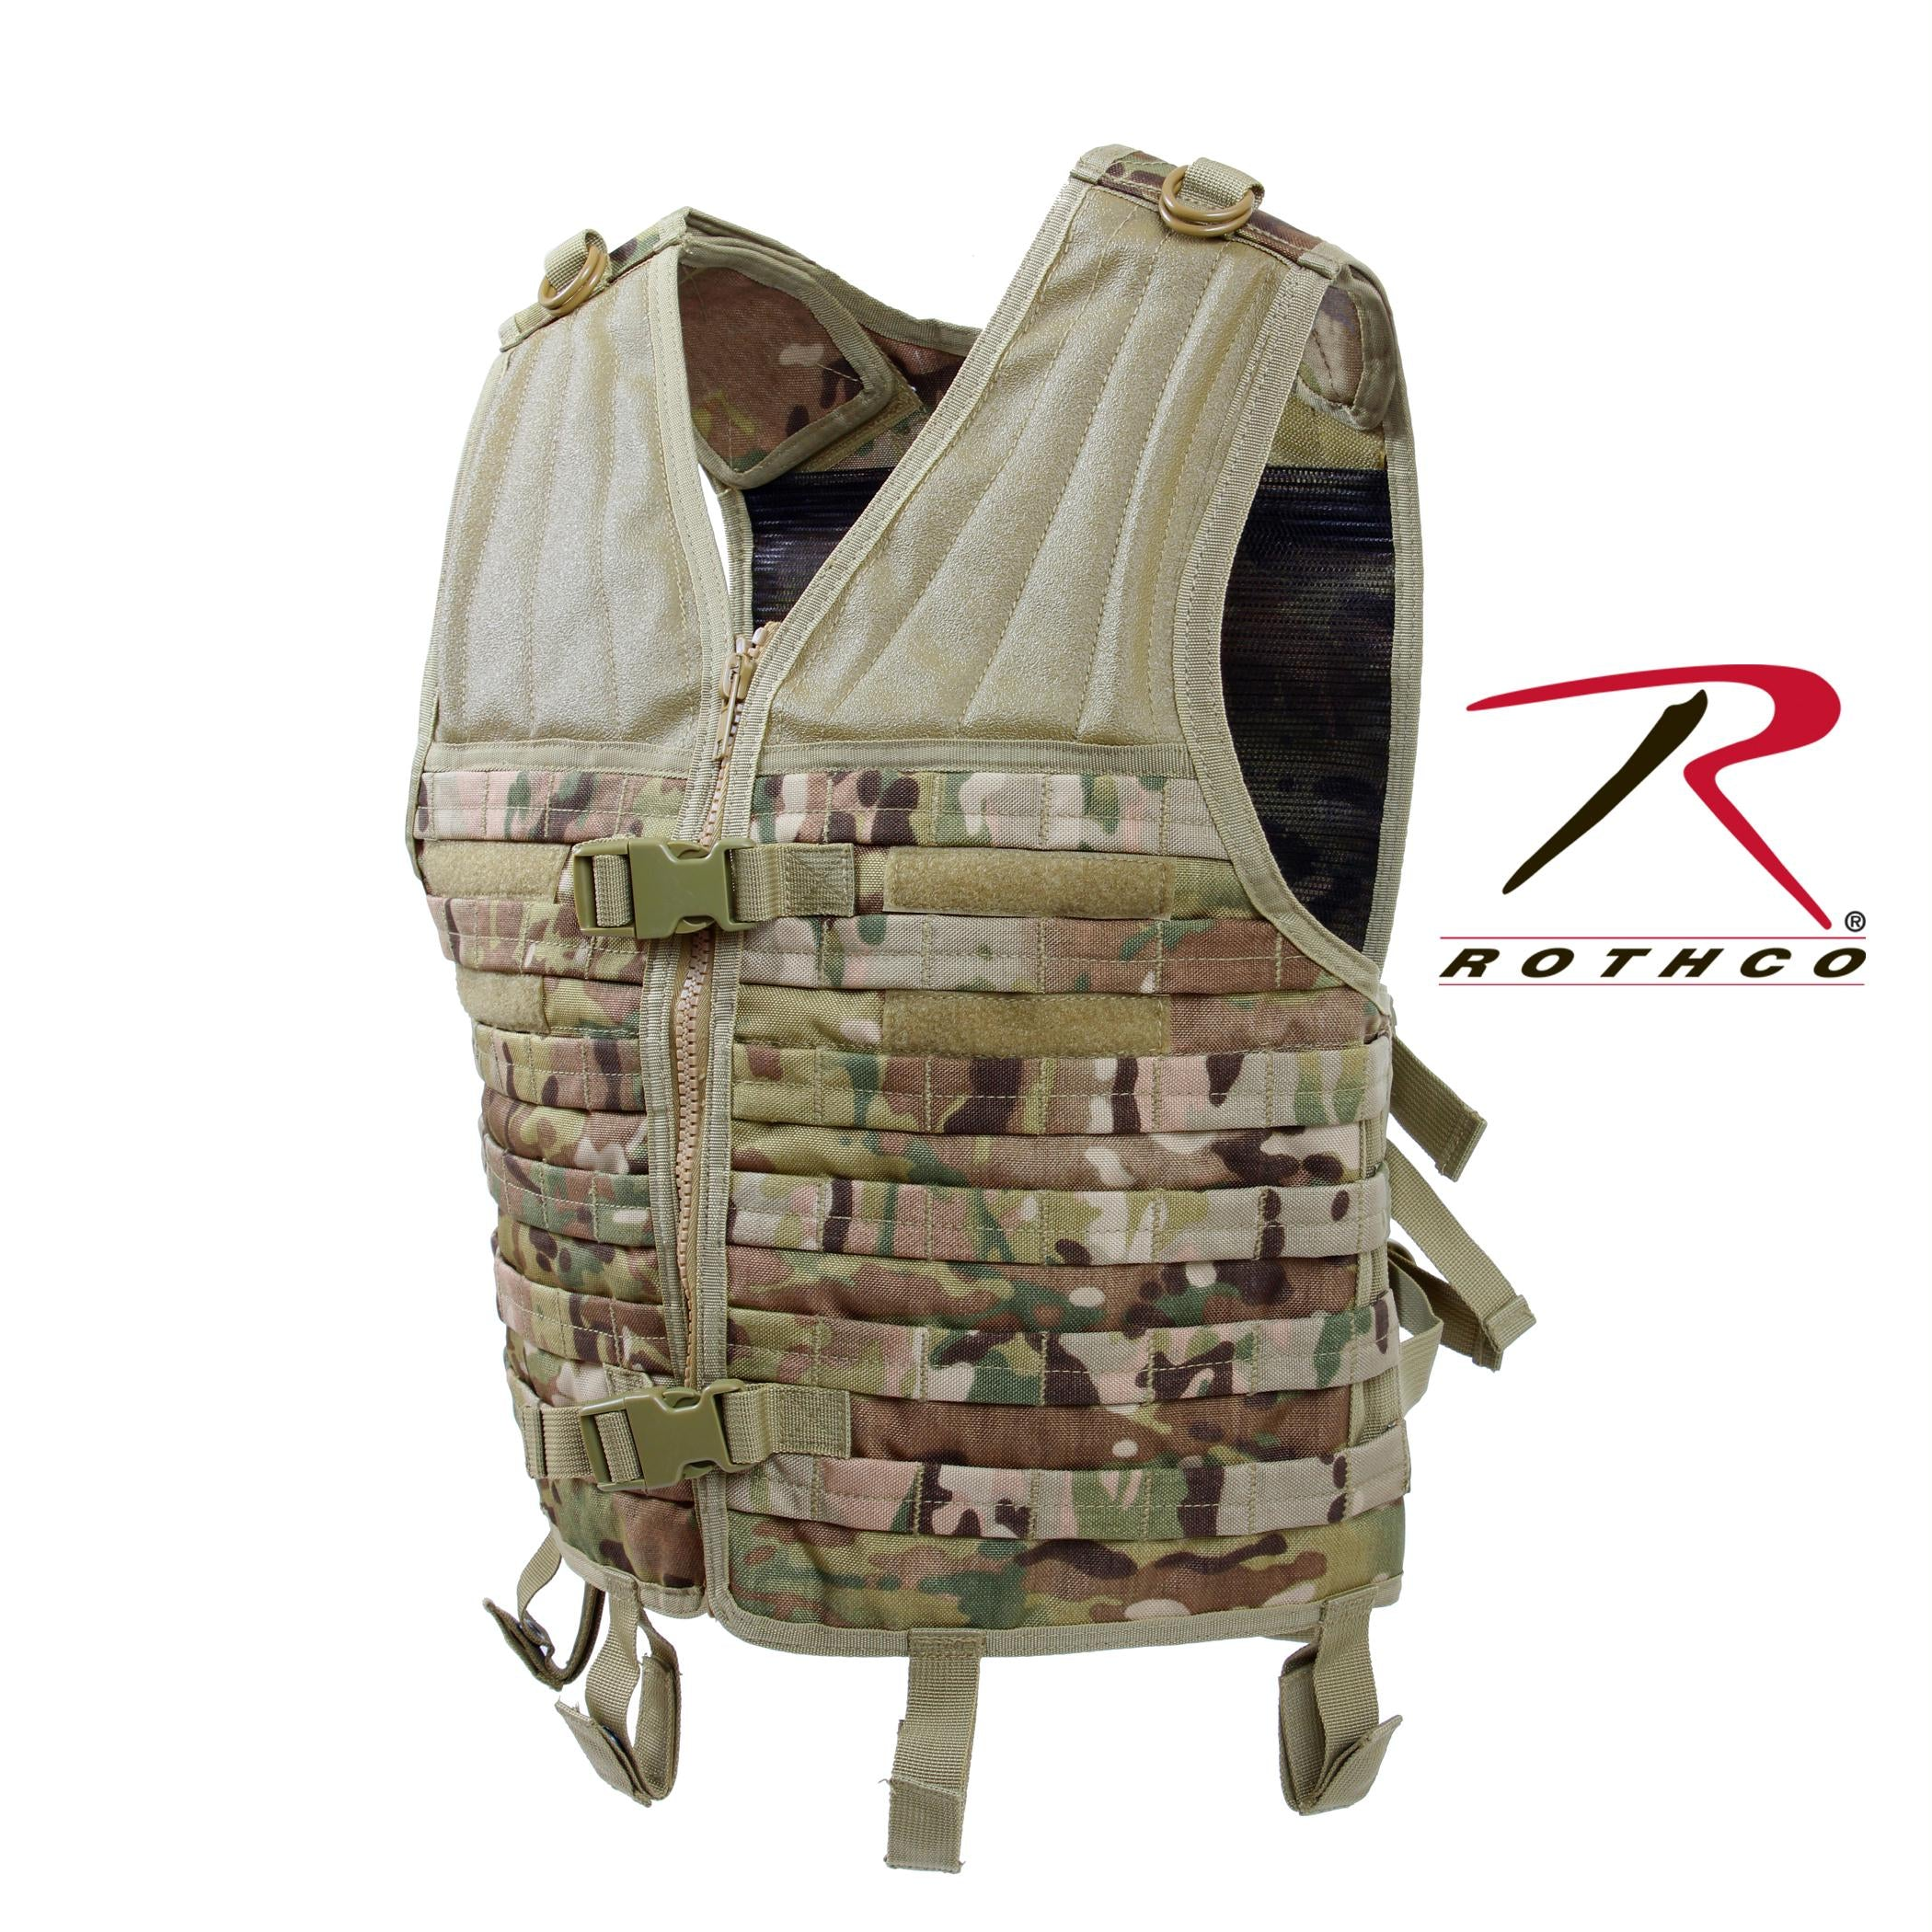 Rothco MOLLE Modular Vest - MultiCam